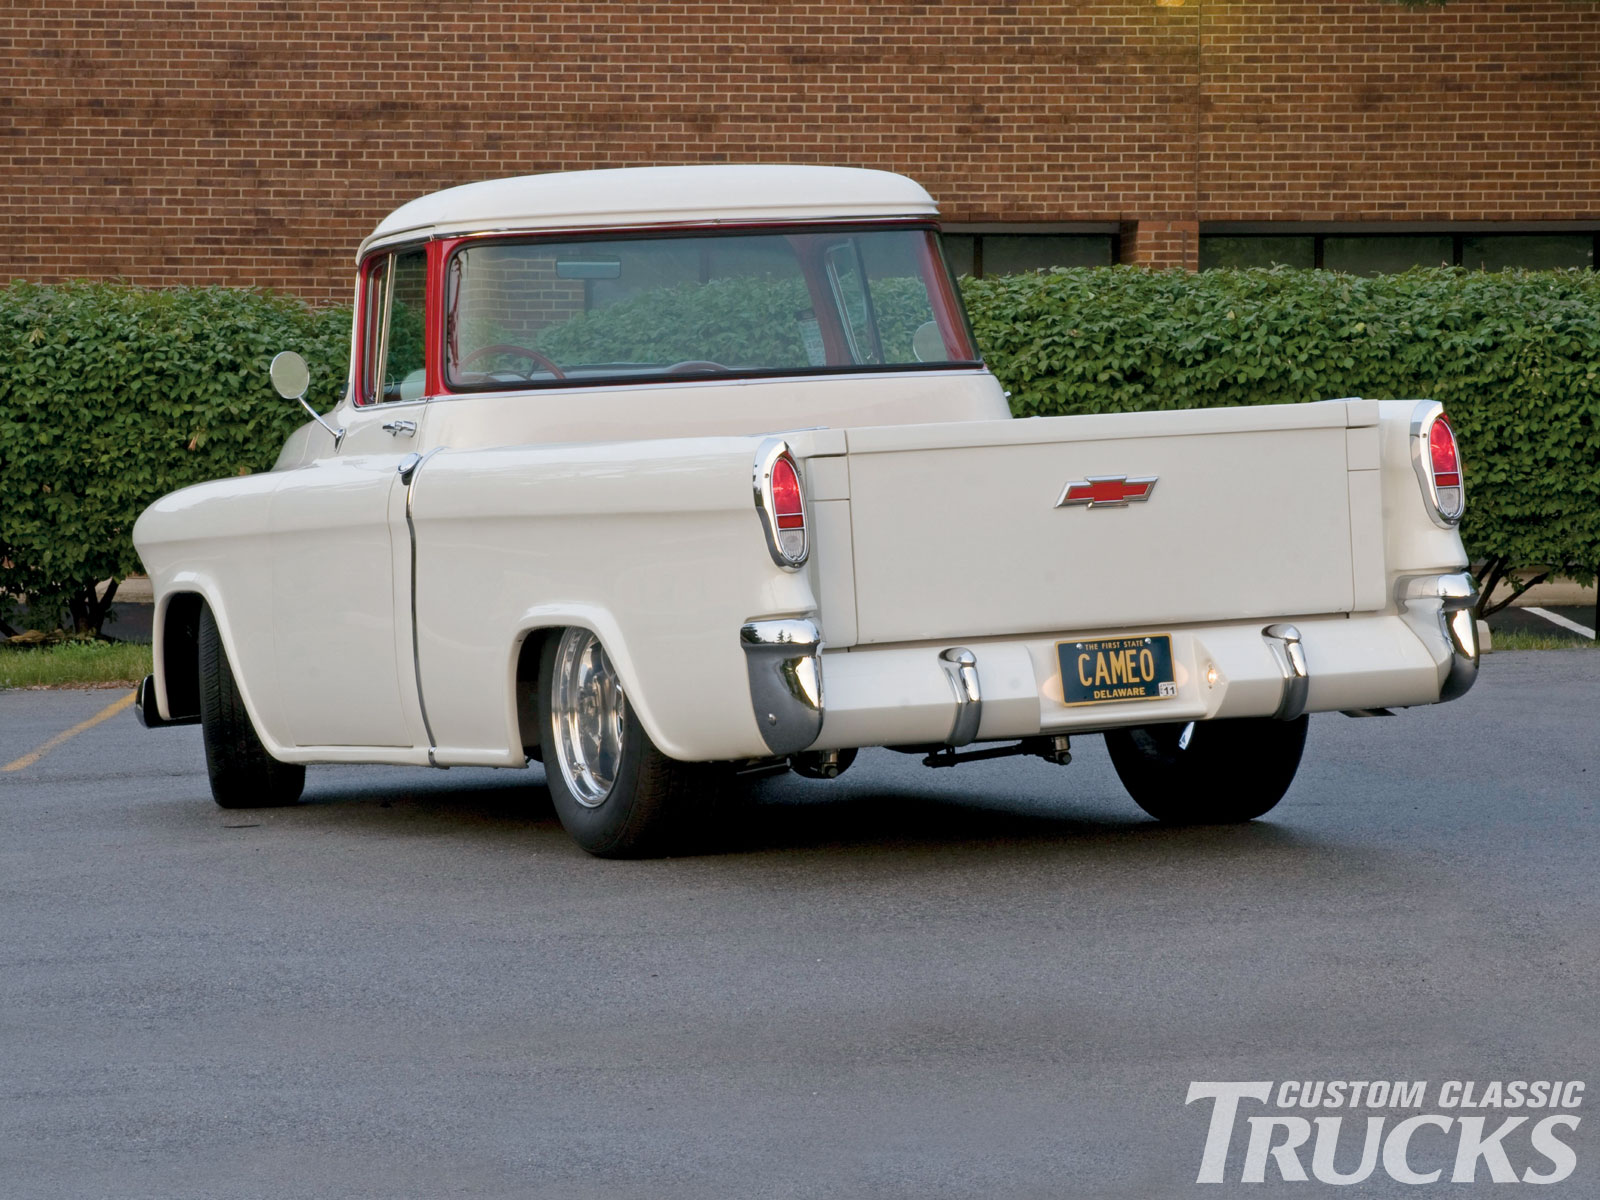 1955 Chevrolet Cameo Pickup Hotrod Pictures Hot Rod Cars